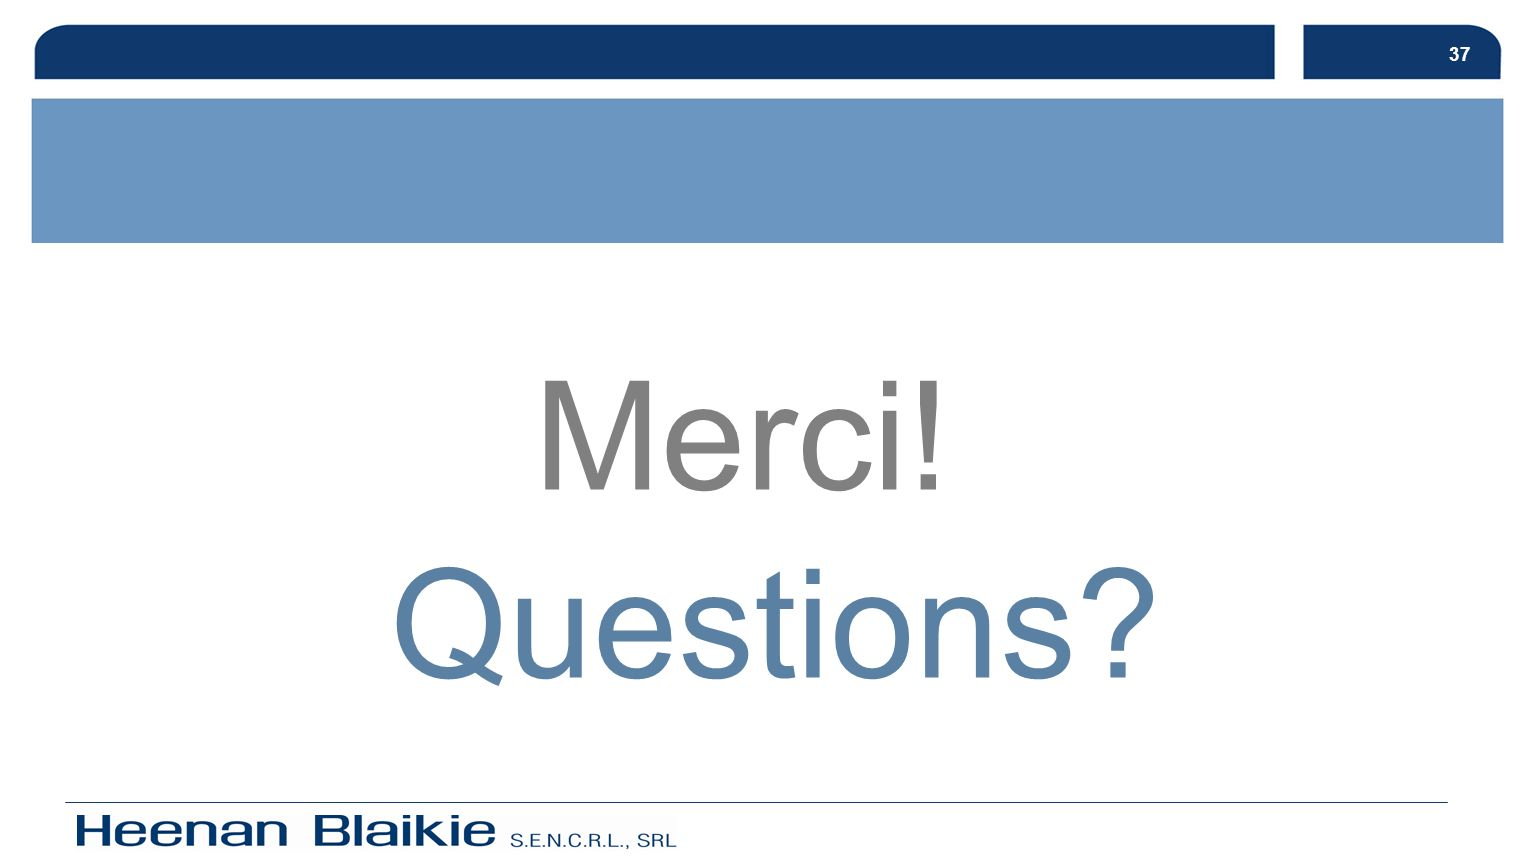 37 Merci! Questions?